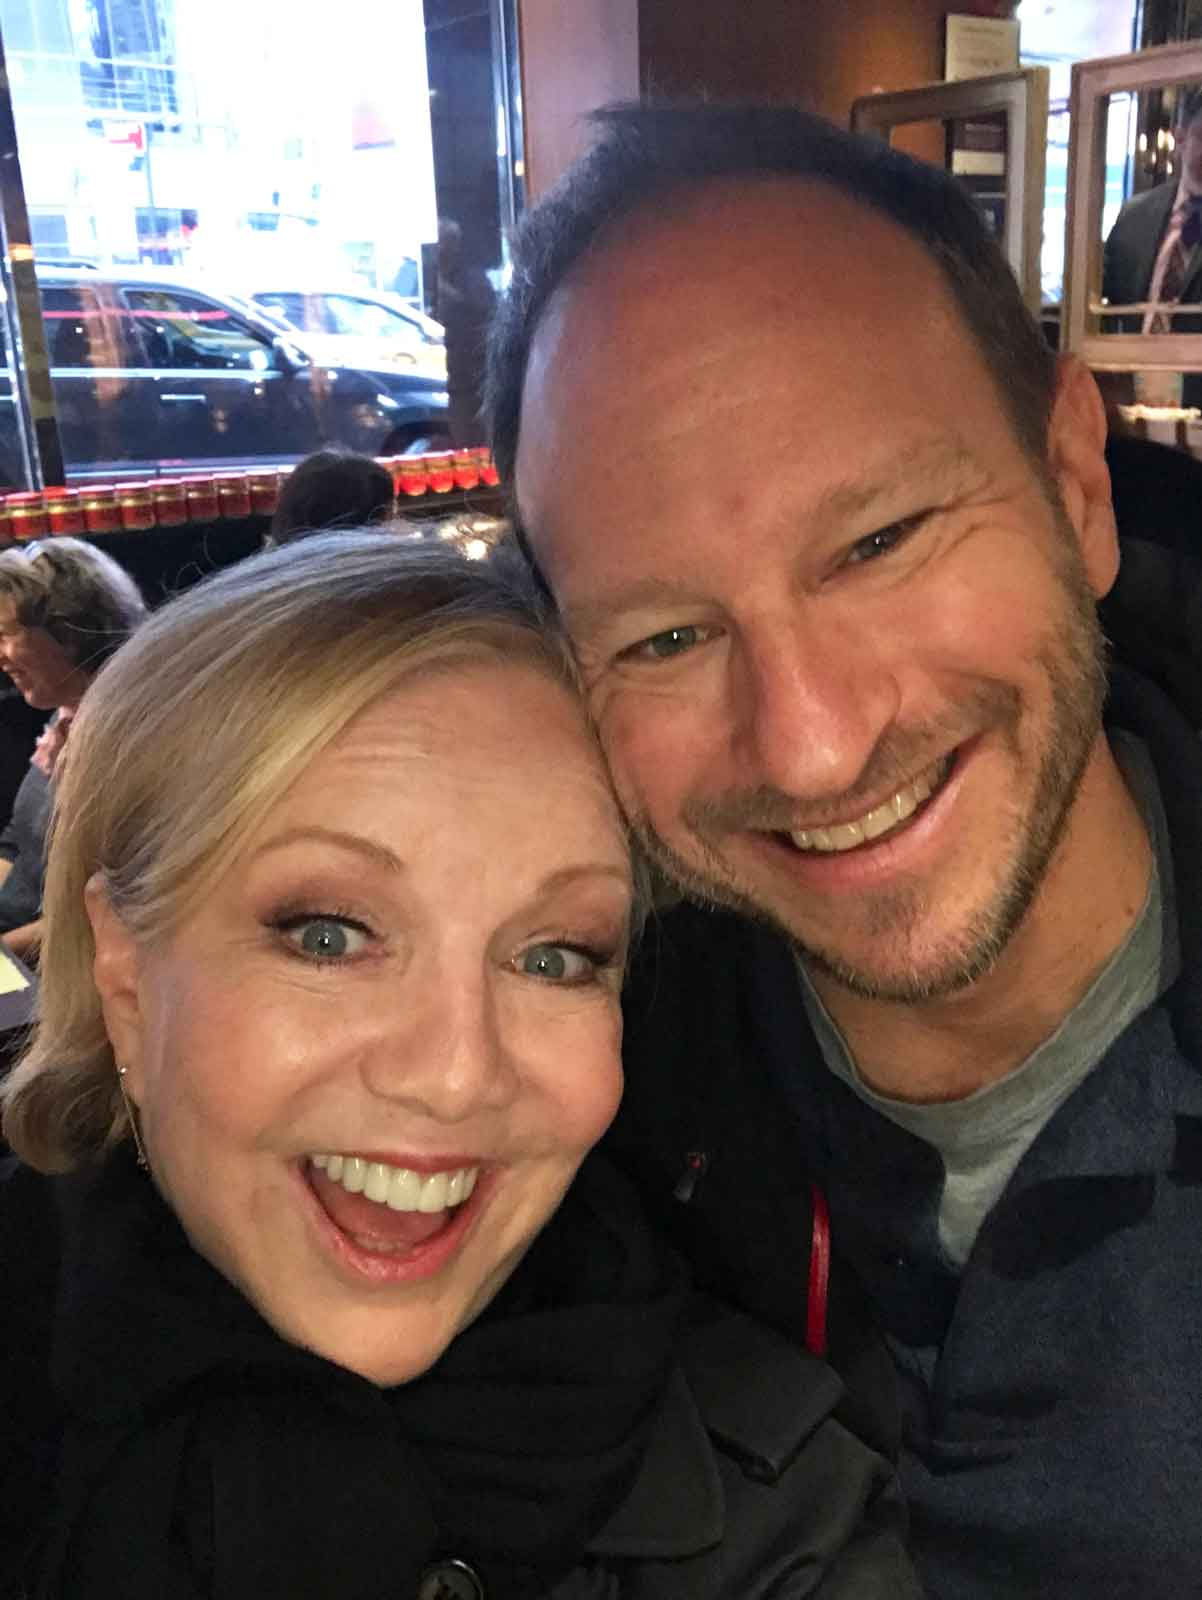 Director Susan Stroman and First AD Sam Hoffman on The Producers: The Movie Musical. They are both dressed in black and hugging with open mouth smiles.